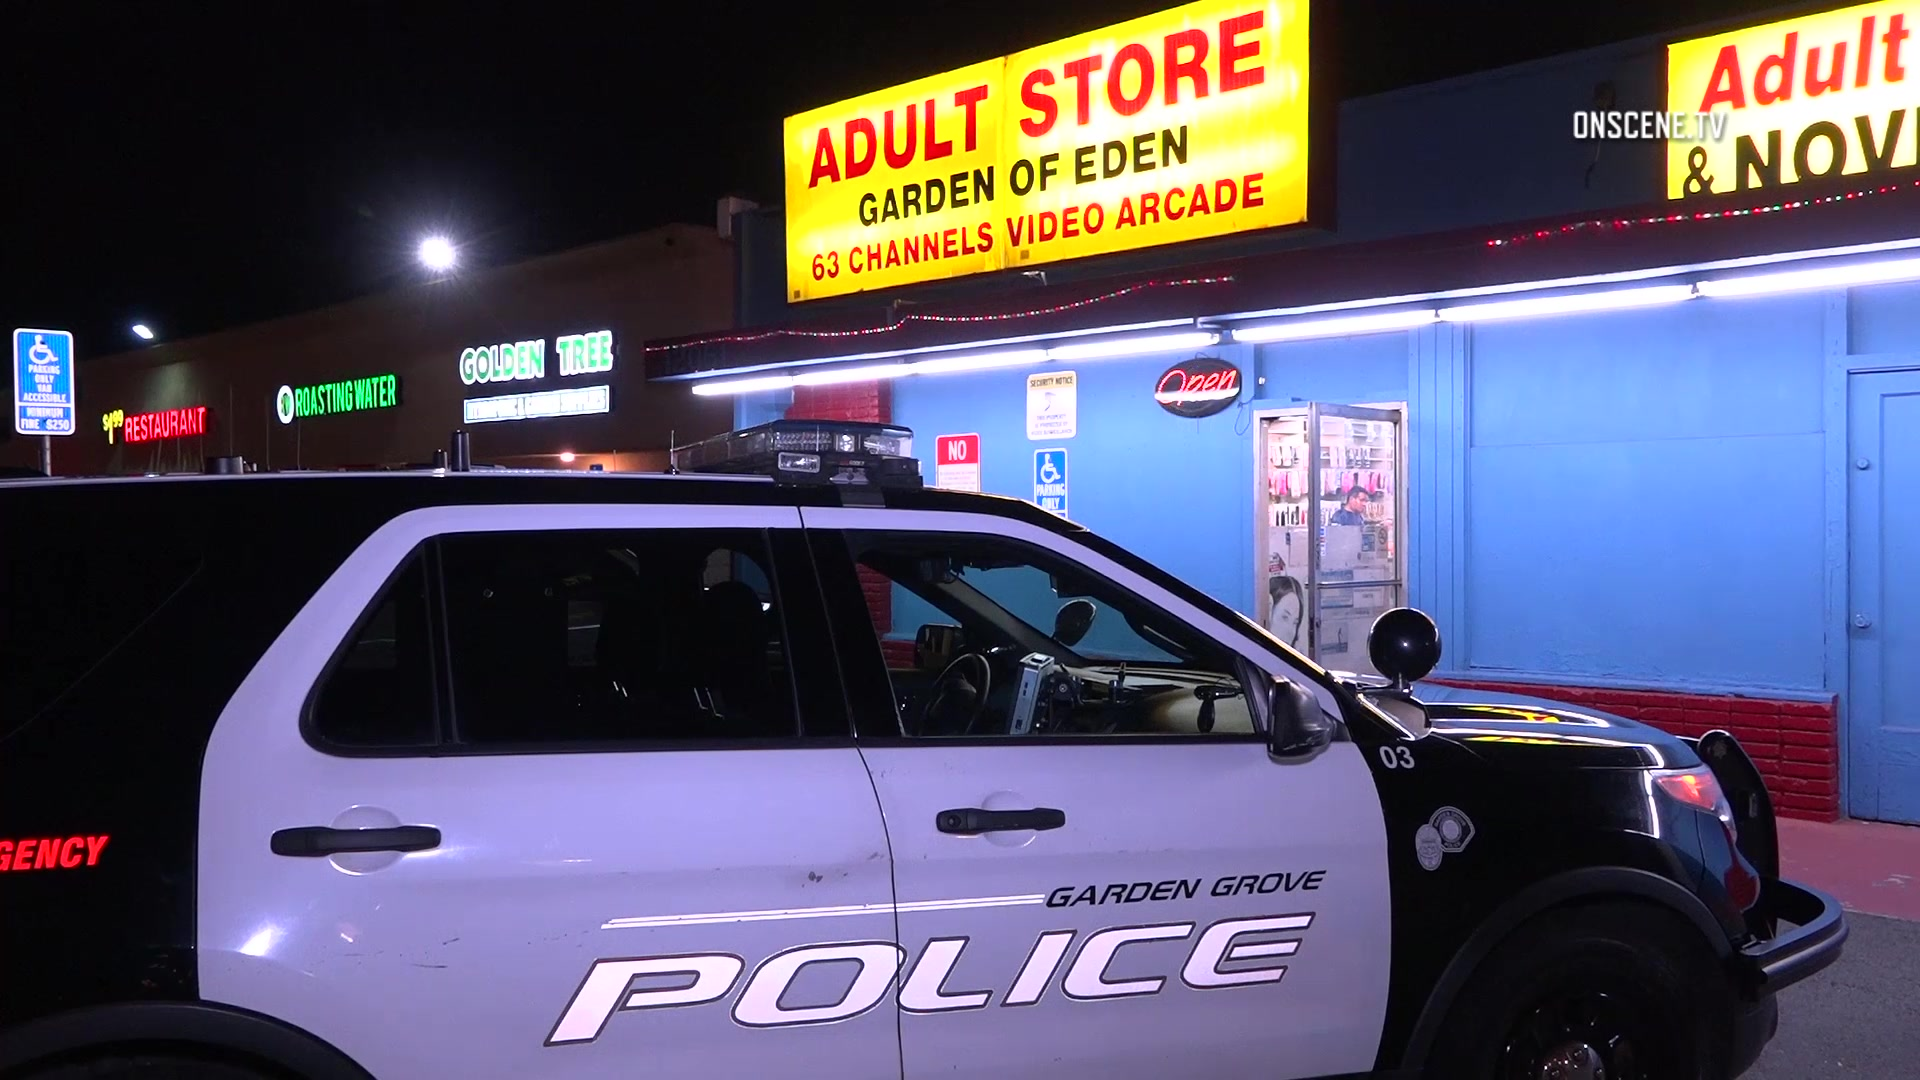 Clerk Assaulted In Garden Grove Adult Bookstore Robbery